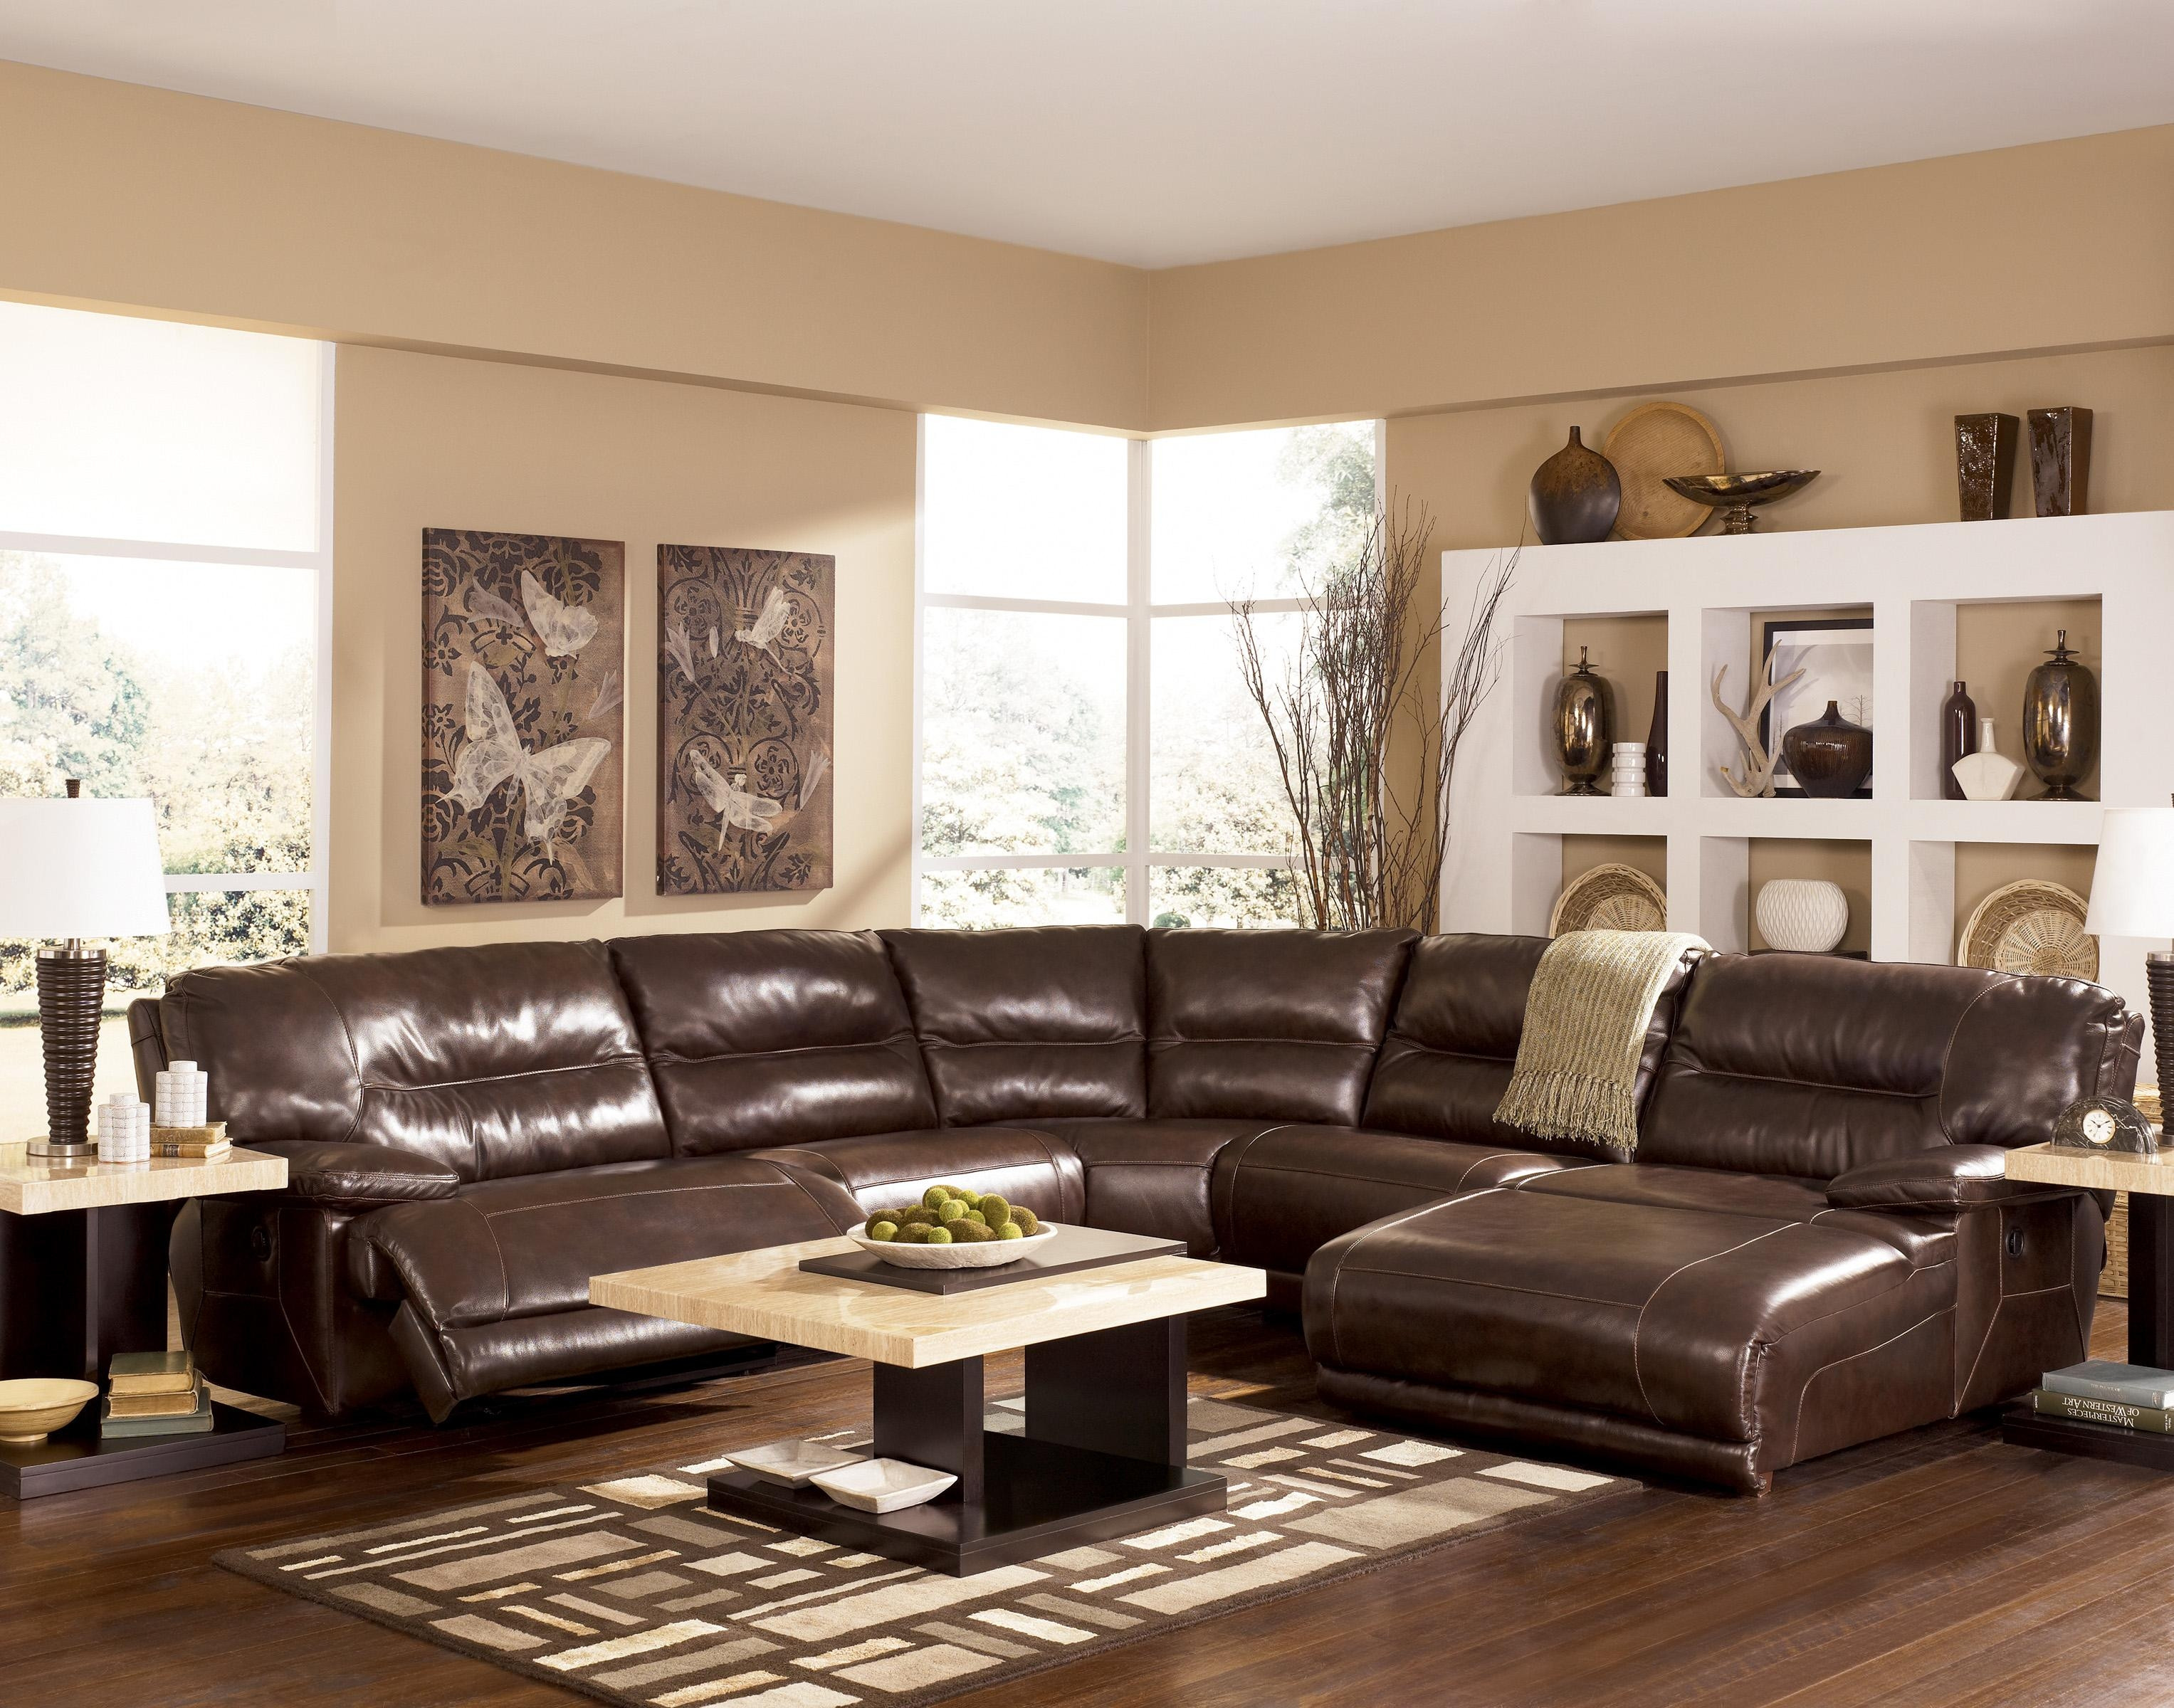 Best ideas about Family Room Sectionals . Save or Pin 20 Top Ashley Furniture Leather Sectional Sofas Now.